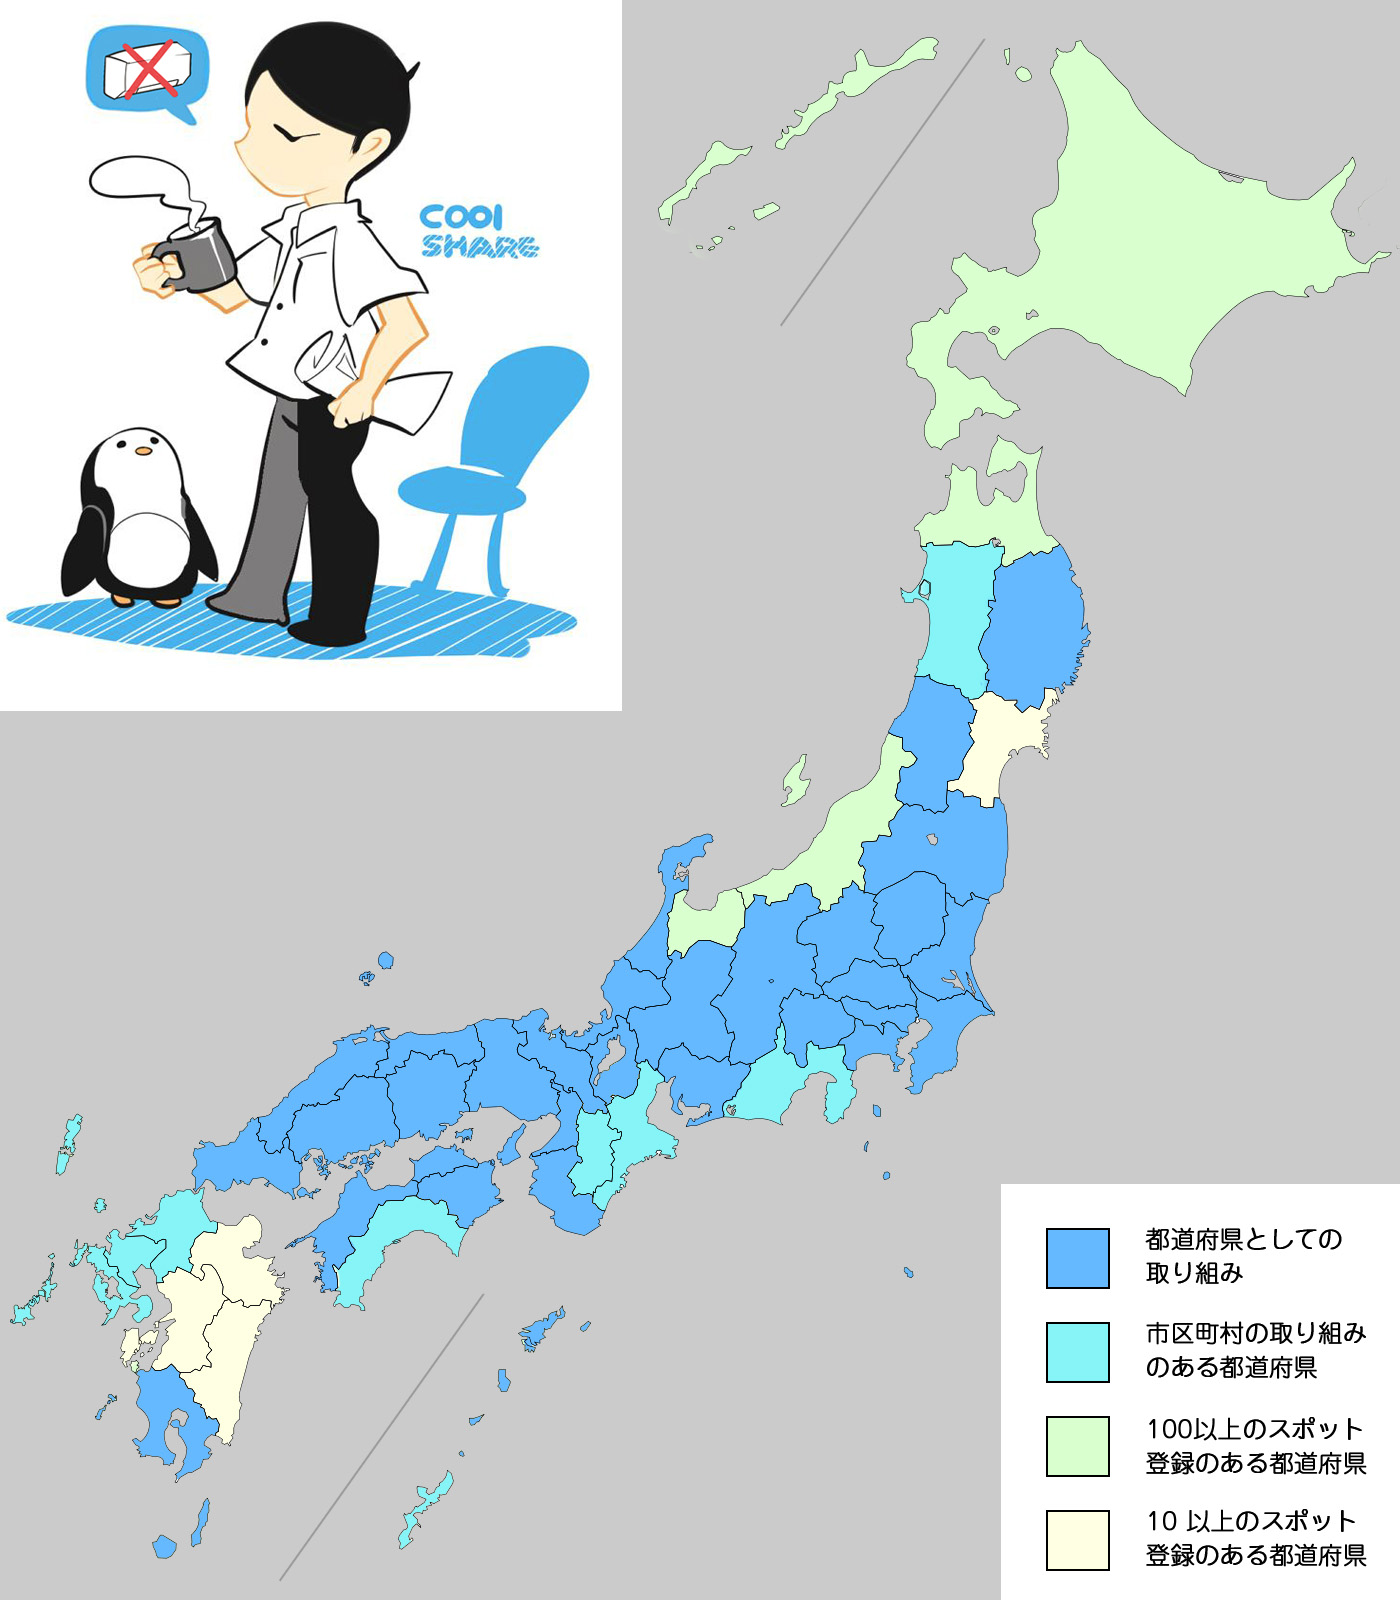 COOL SHARE / クールシェア